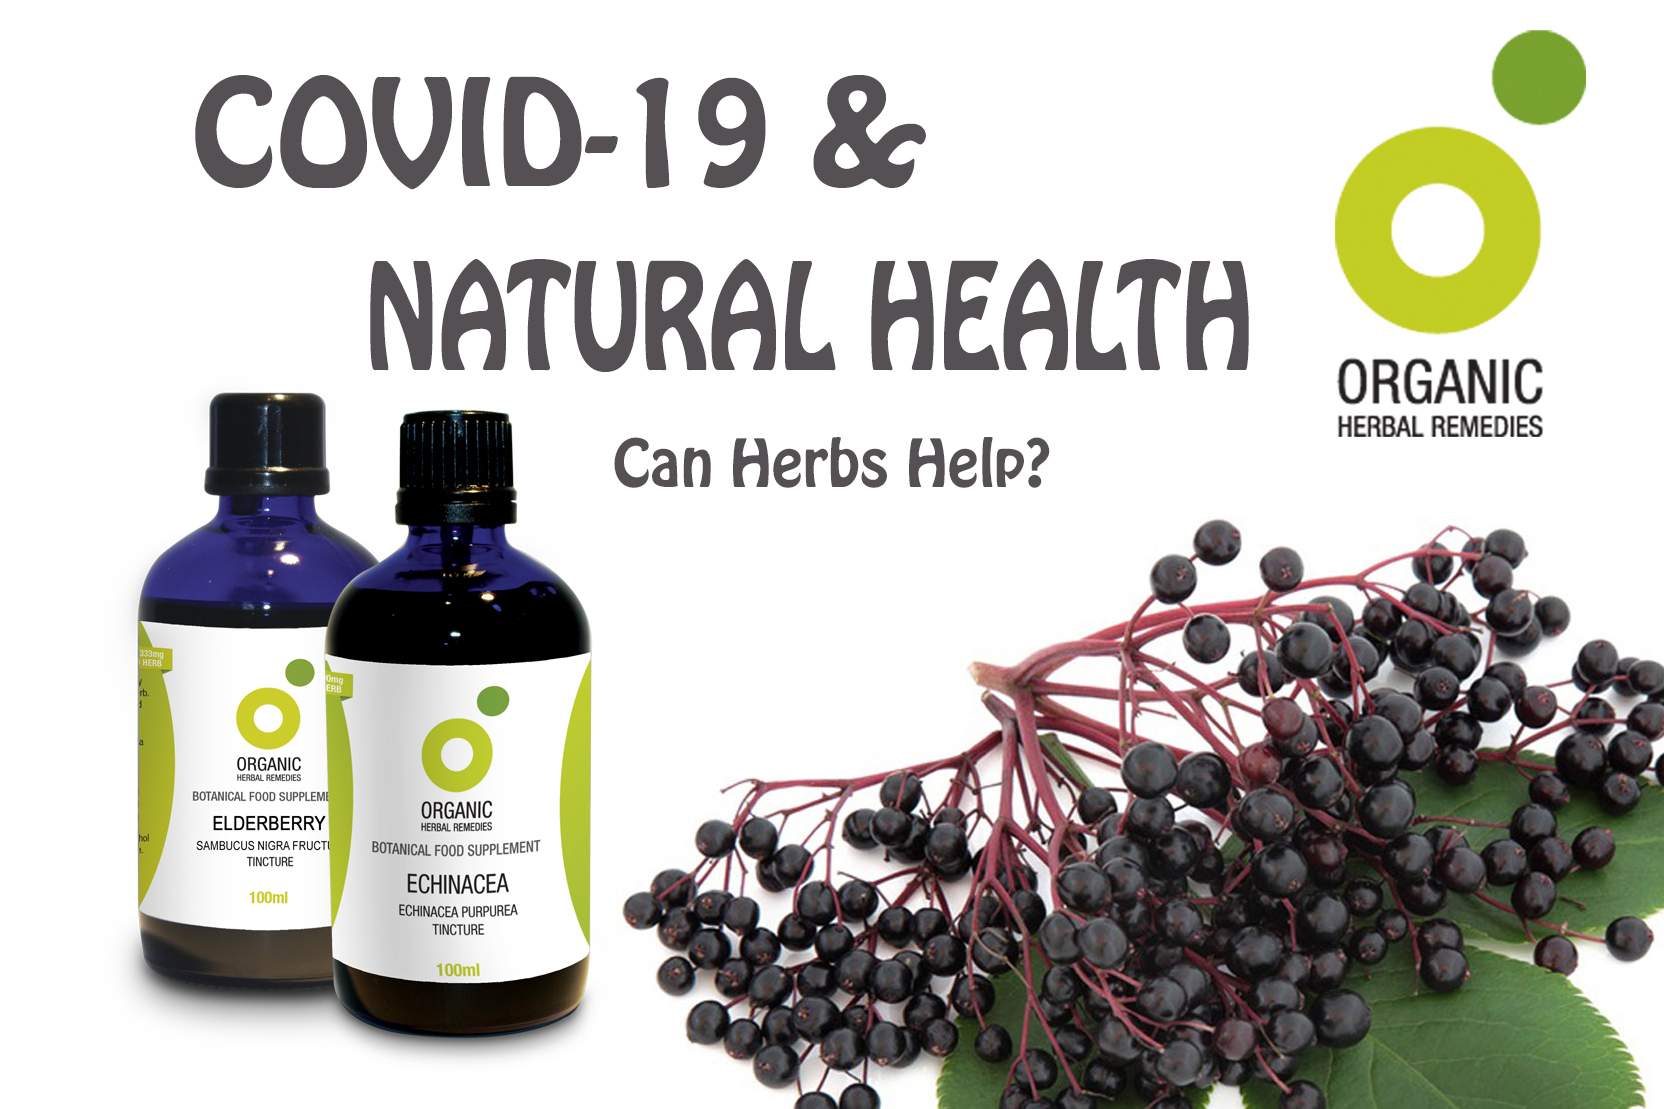 covid-19 and herbal remedies